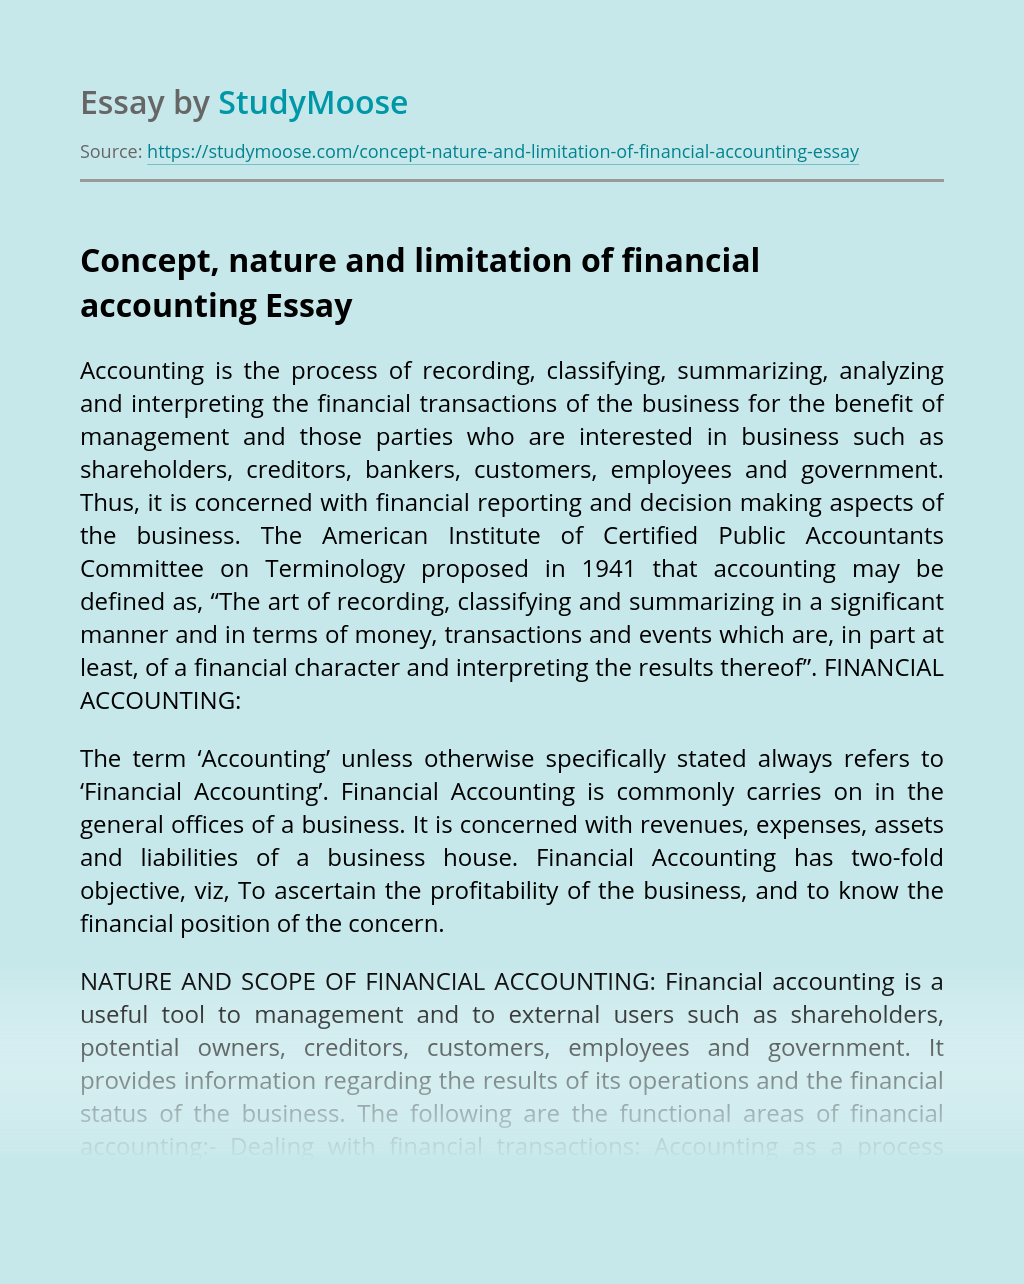 Concept, nature and limitation of financial accounting